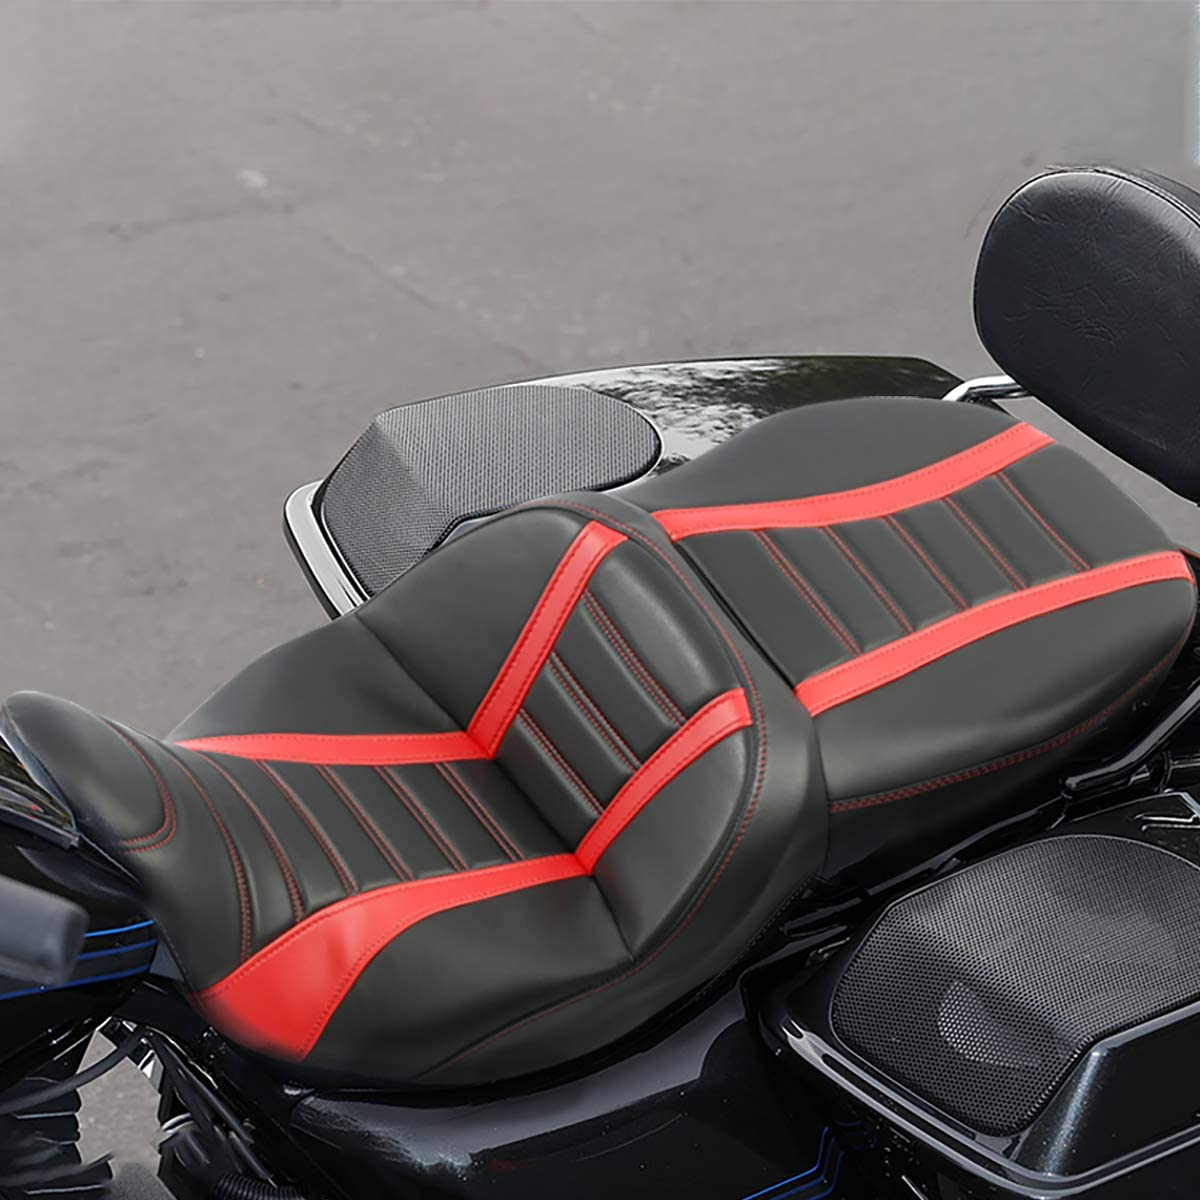 Black Blue XFMT Deluxe One-Piece Two-Up Motorcycle Rider Passenger Seat For Harley Davidson Touring Road King Ultra CVO Street Glide Road Glide Electra Glide 2009-2020